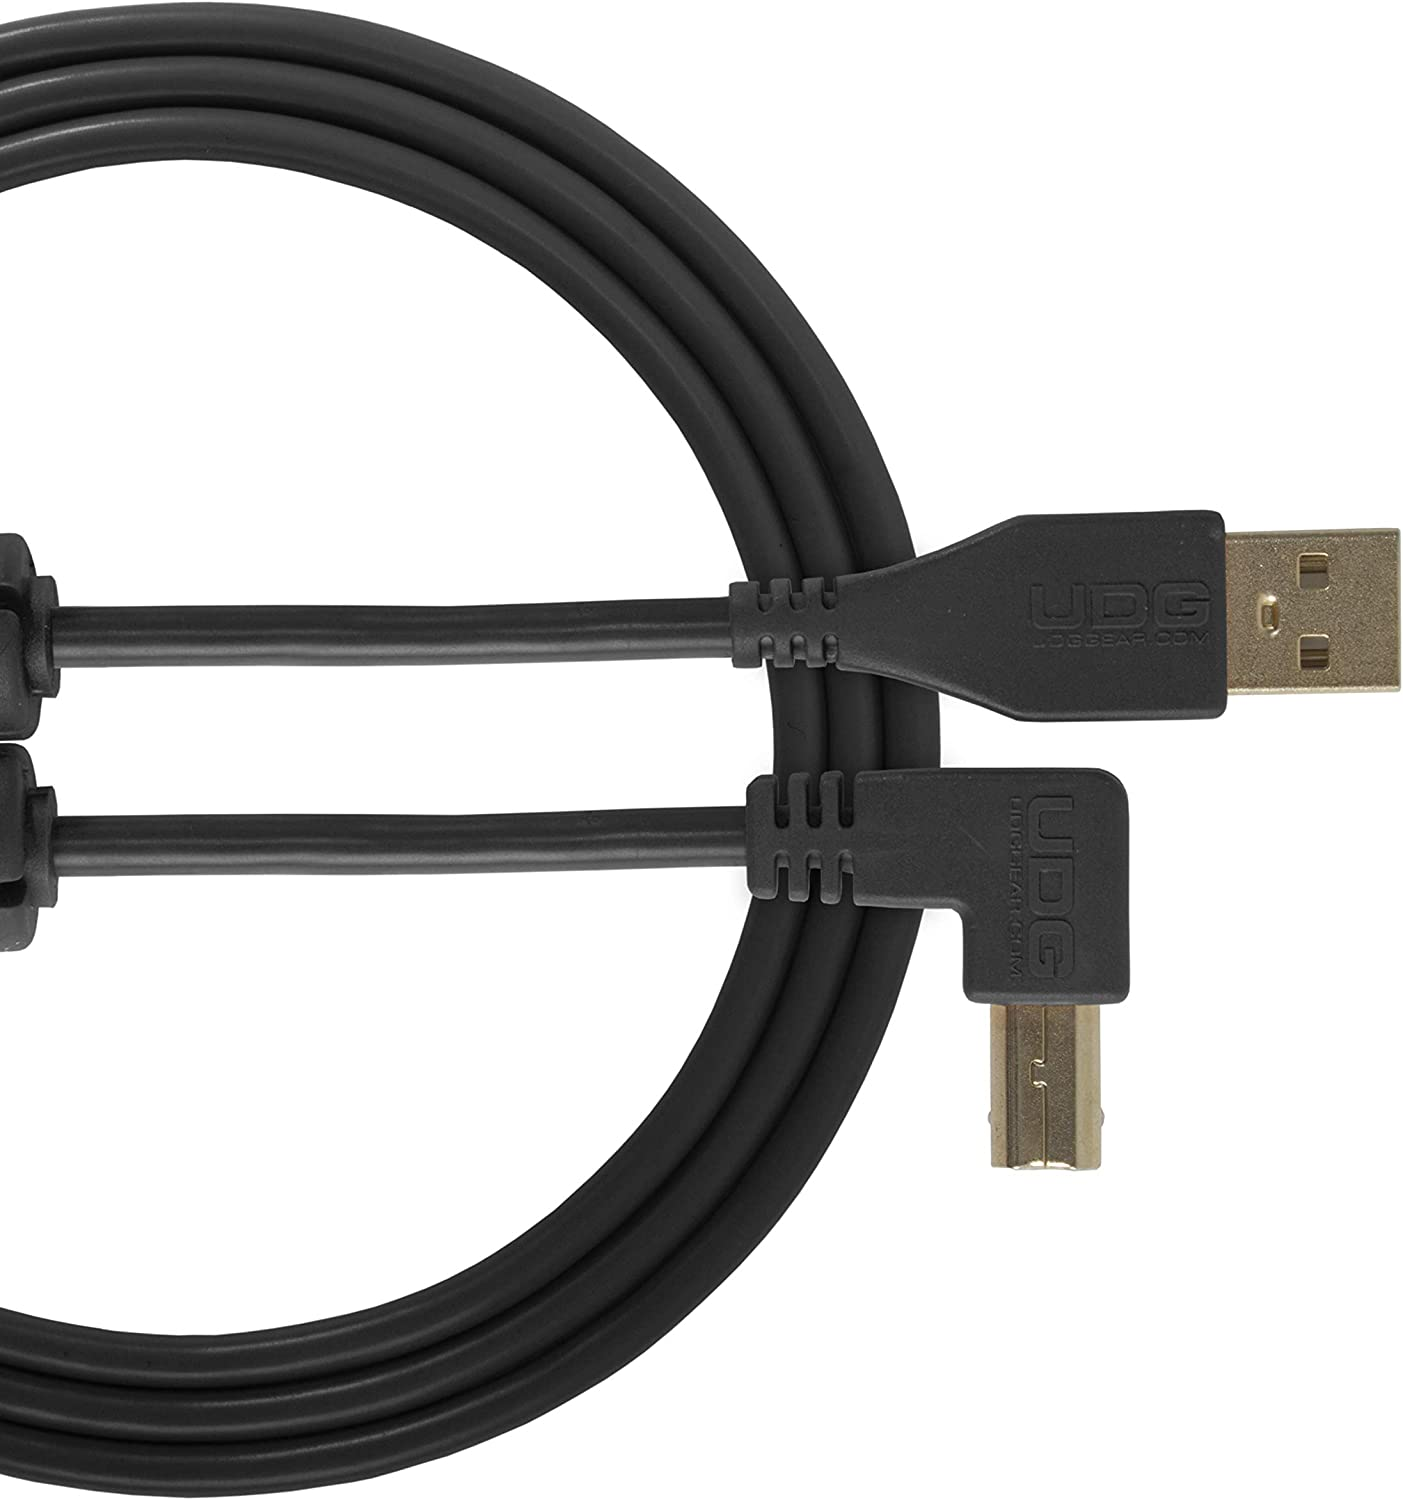 UDG Cable USB 2.0 High-speed Audio Optimized USB 2.0 A-Male to B-Male cable A-B